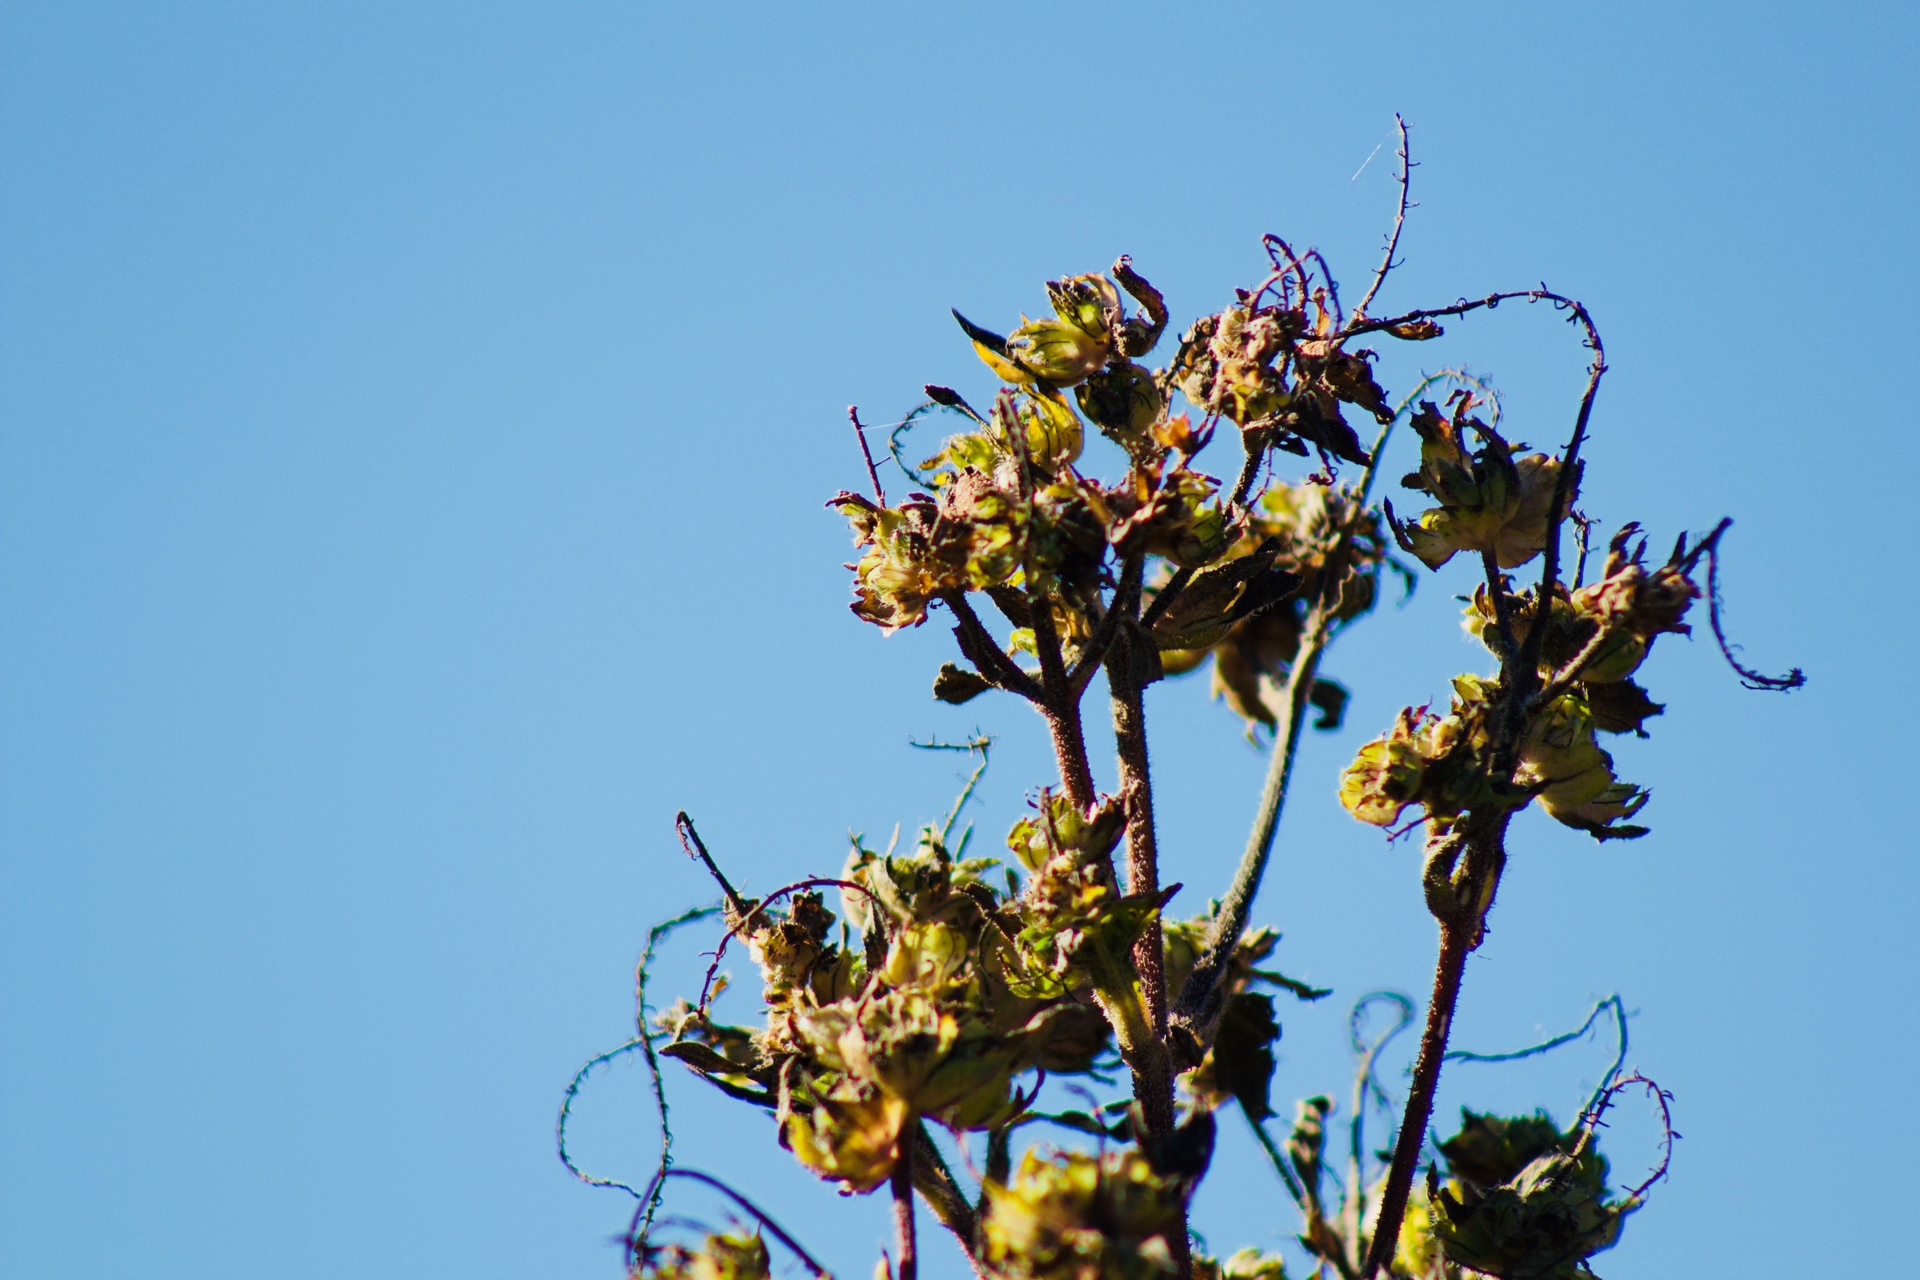 Dried ragweed with delicate tendrils against a clear, blue, autumn sky